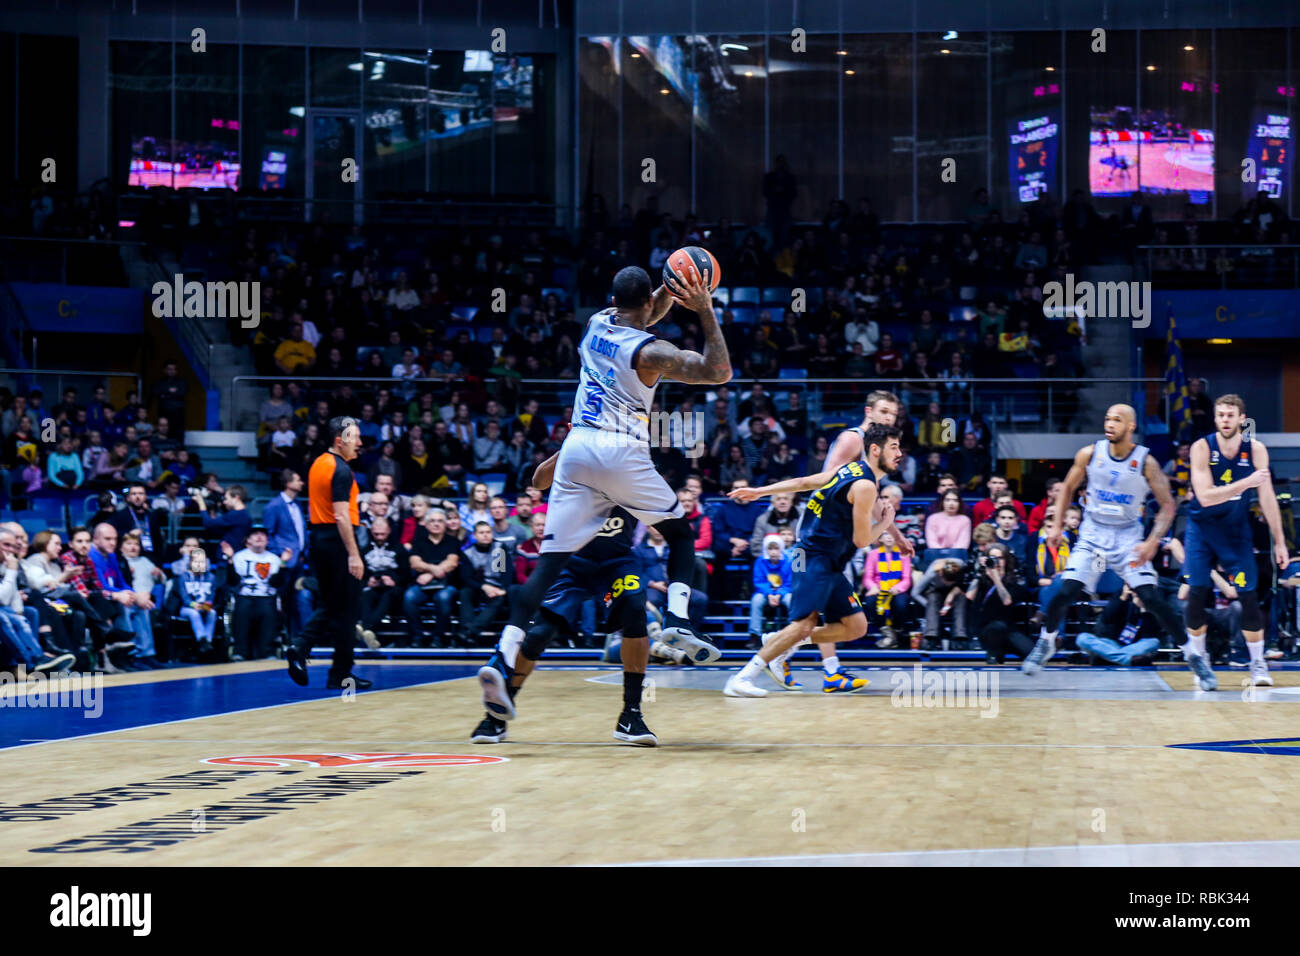 Dee Bost, #3 of Khimki Moscow seen in action against Fenerbahce Istanbul in Round 17 of the Turkish Airlines Euroleague  game of the 2018-2019 season. Khimki Moscow beat Fenerbahce Istanbul in overtime, 84-78. - Stock Image